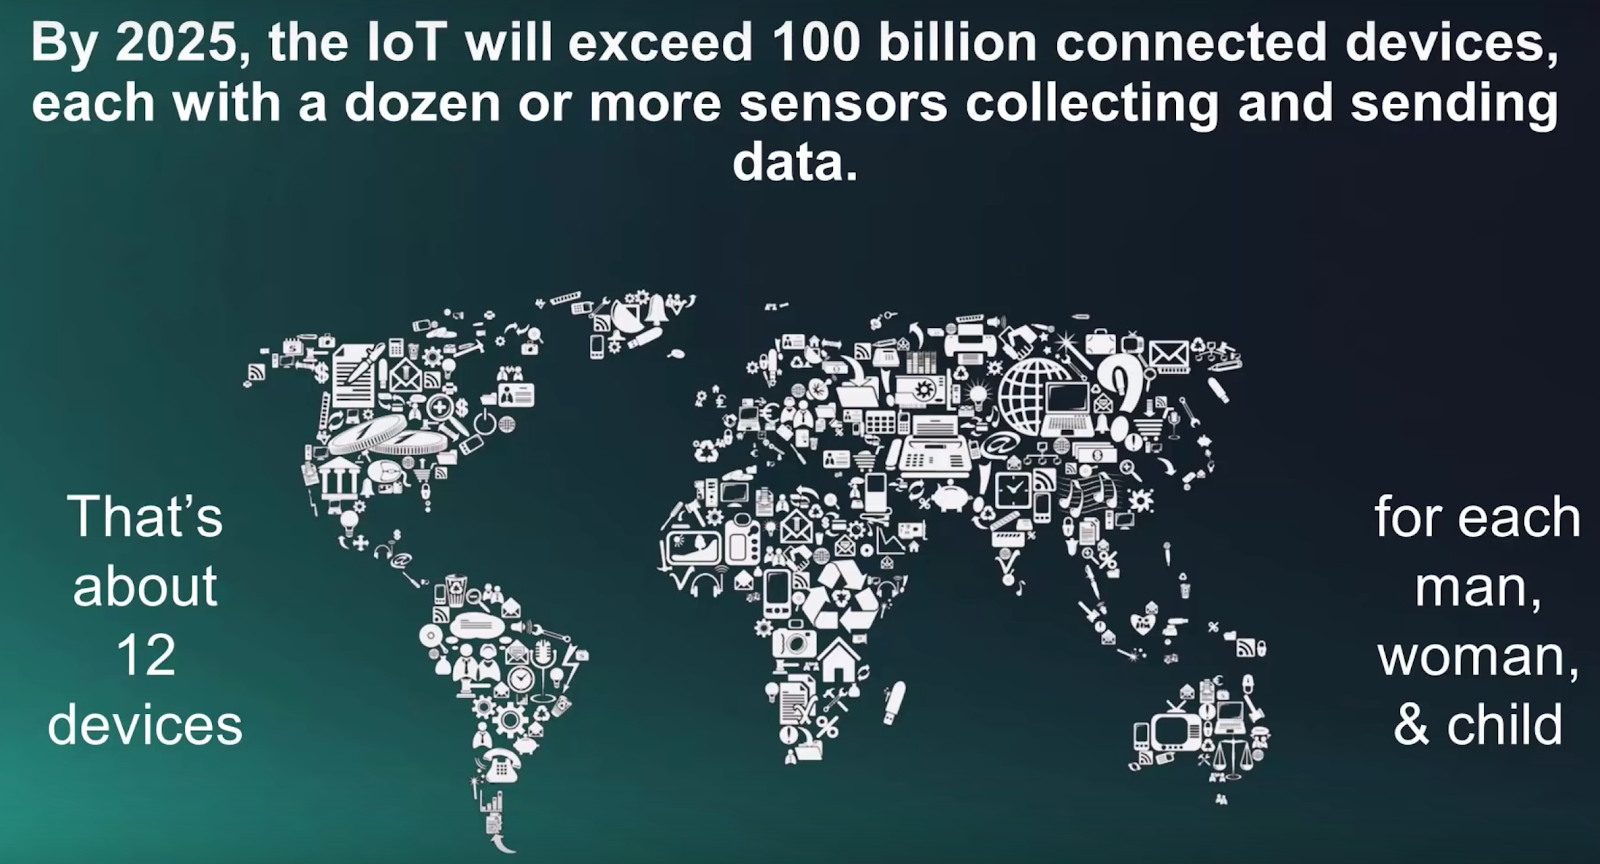 By 2025, IoT will exceed 100 Billion Connected Devices